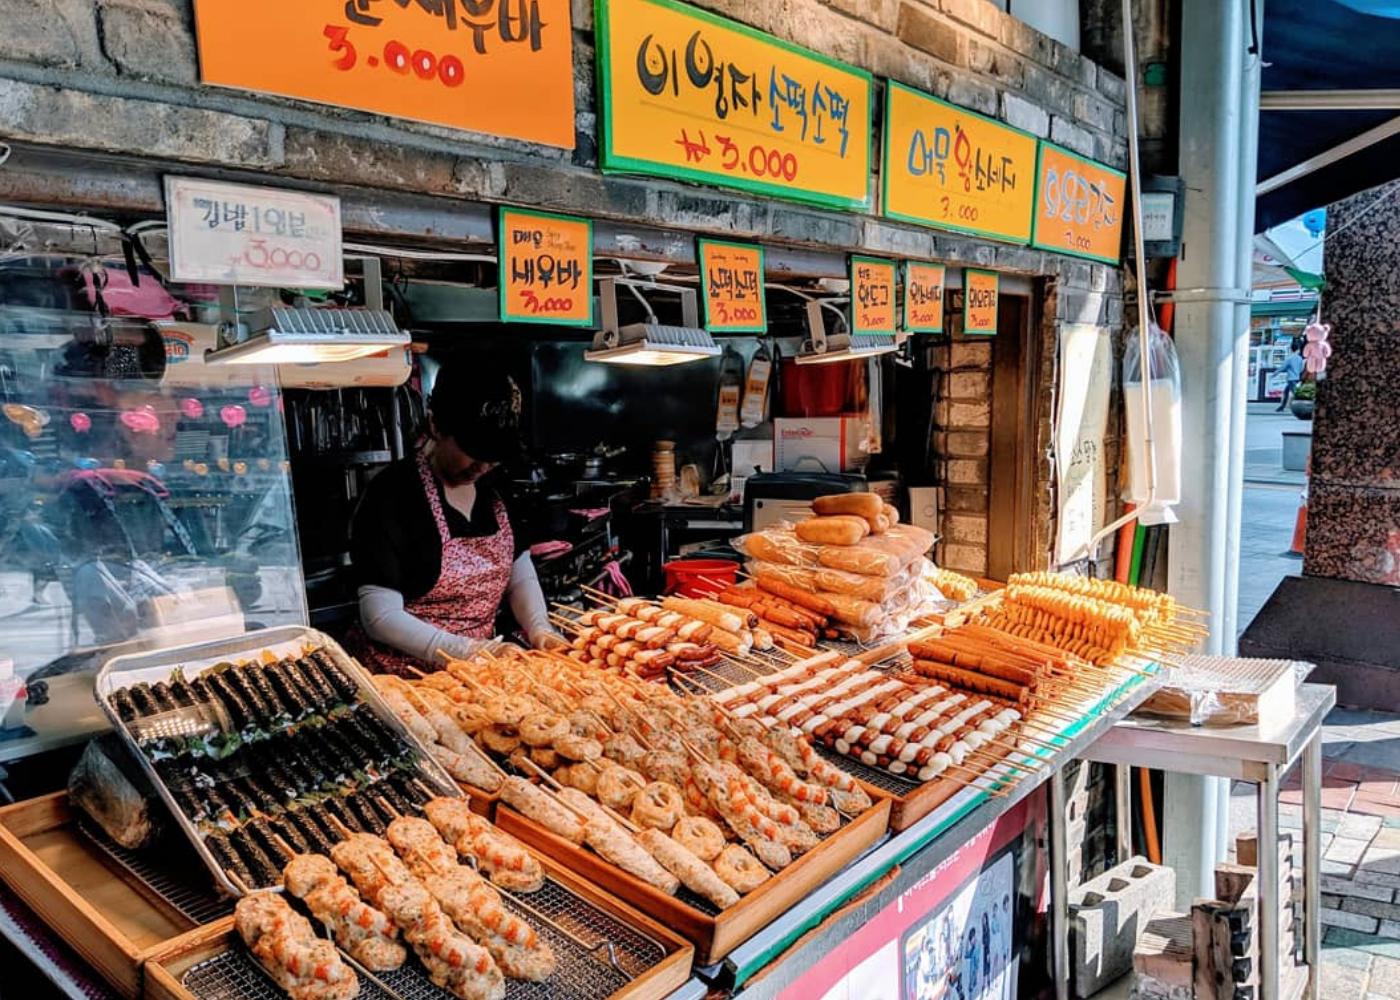 All about that street food.